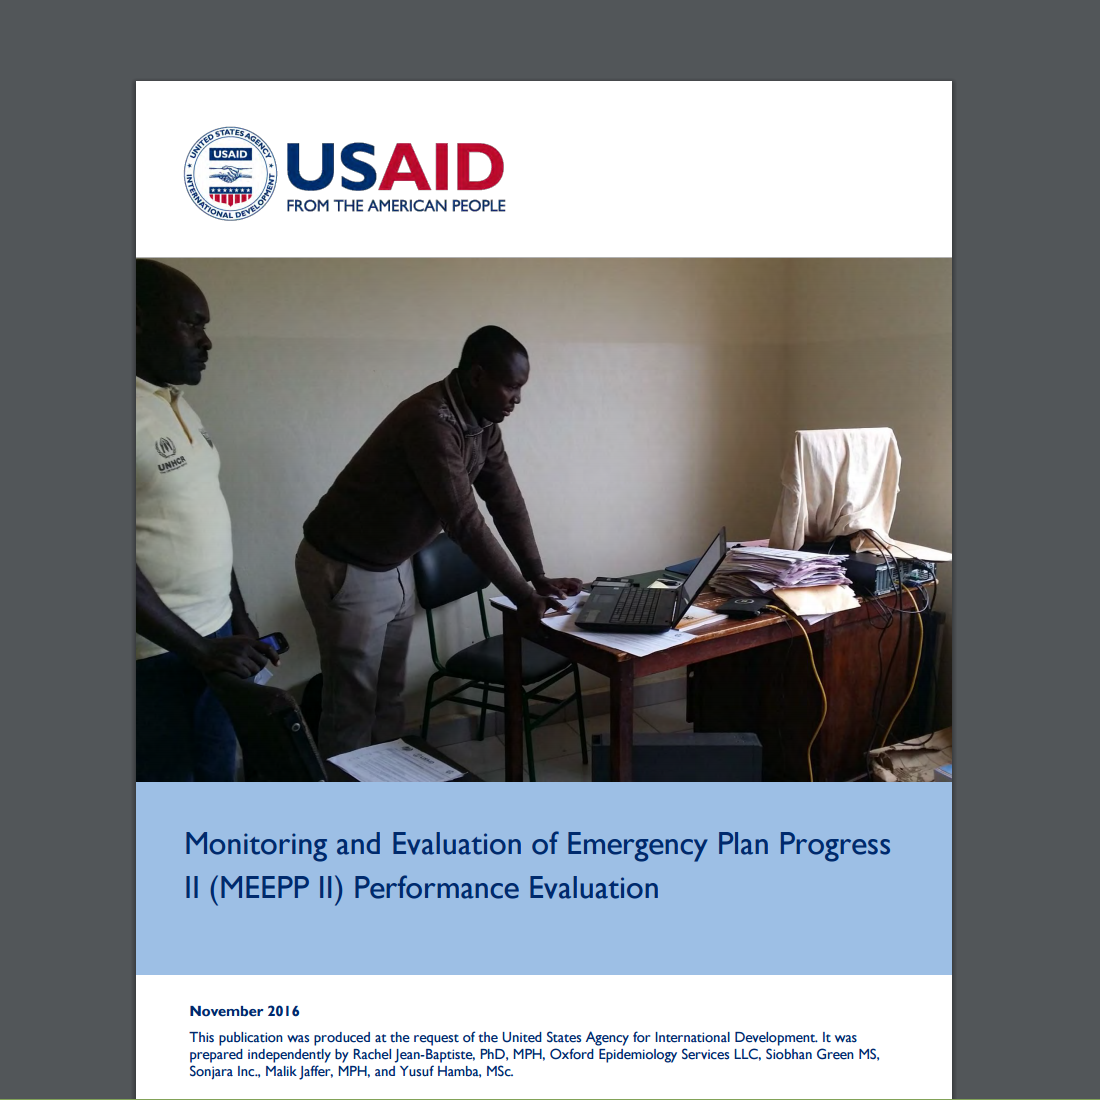 Monitoring and Evaluation of Emergency Plan Progress II (MEEPP II) Performance Evaluation